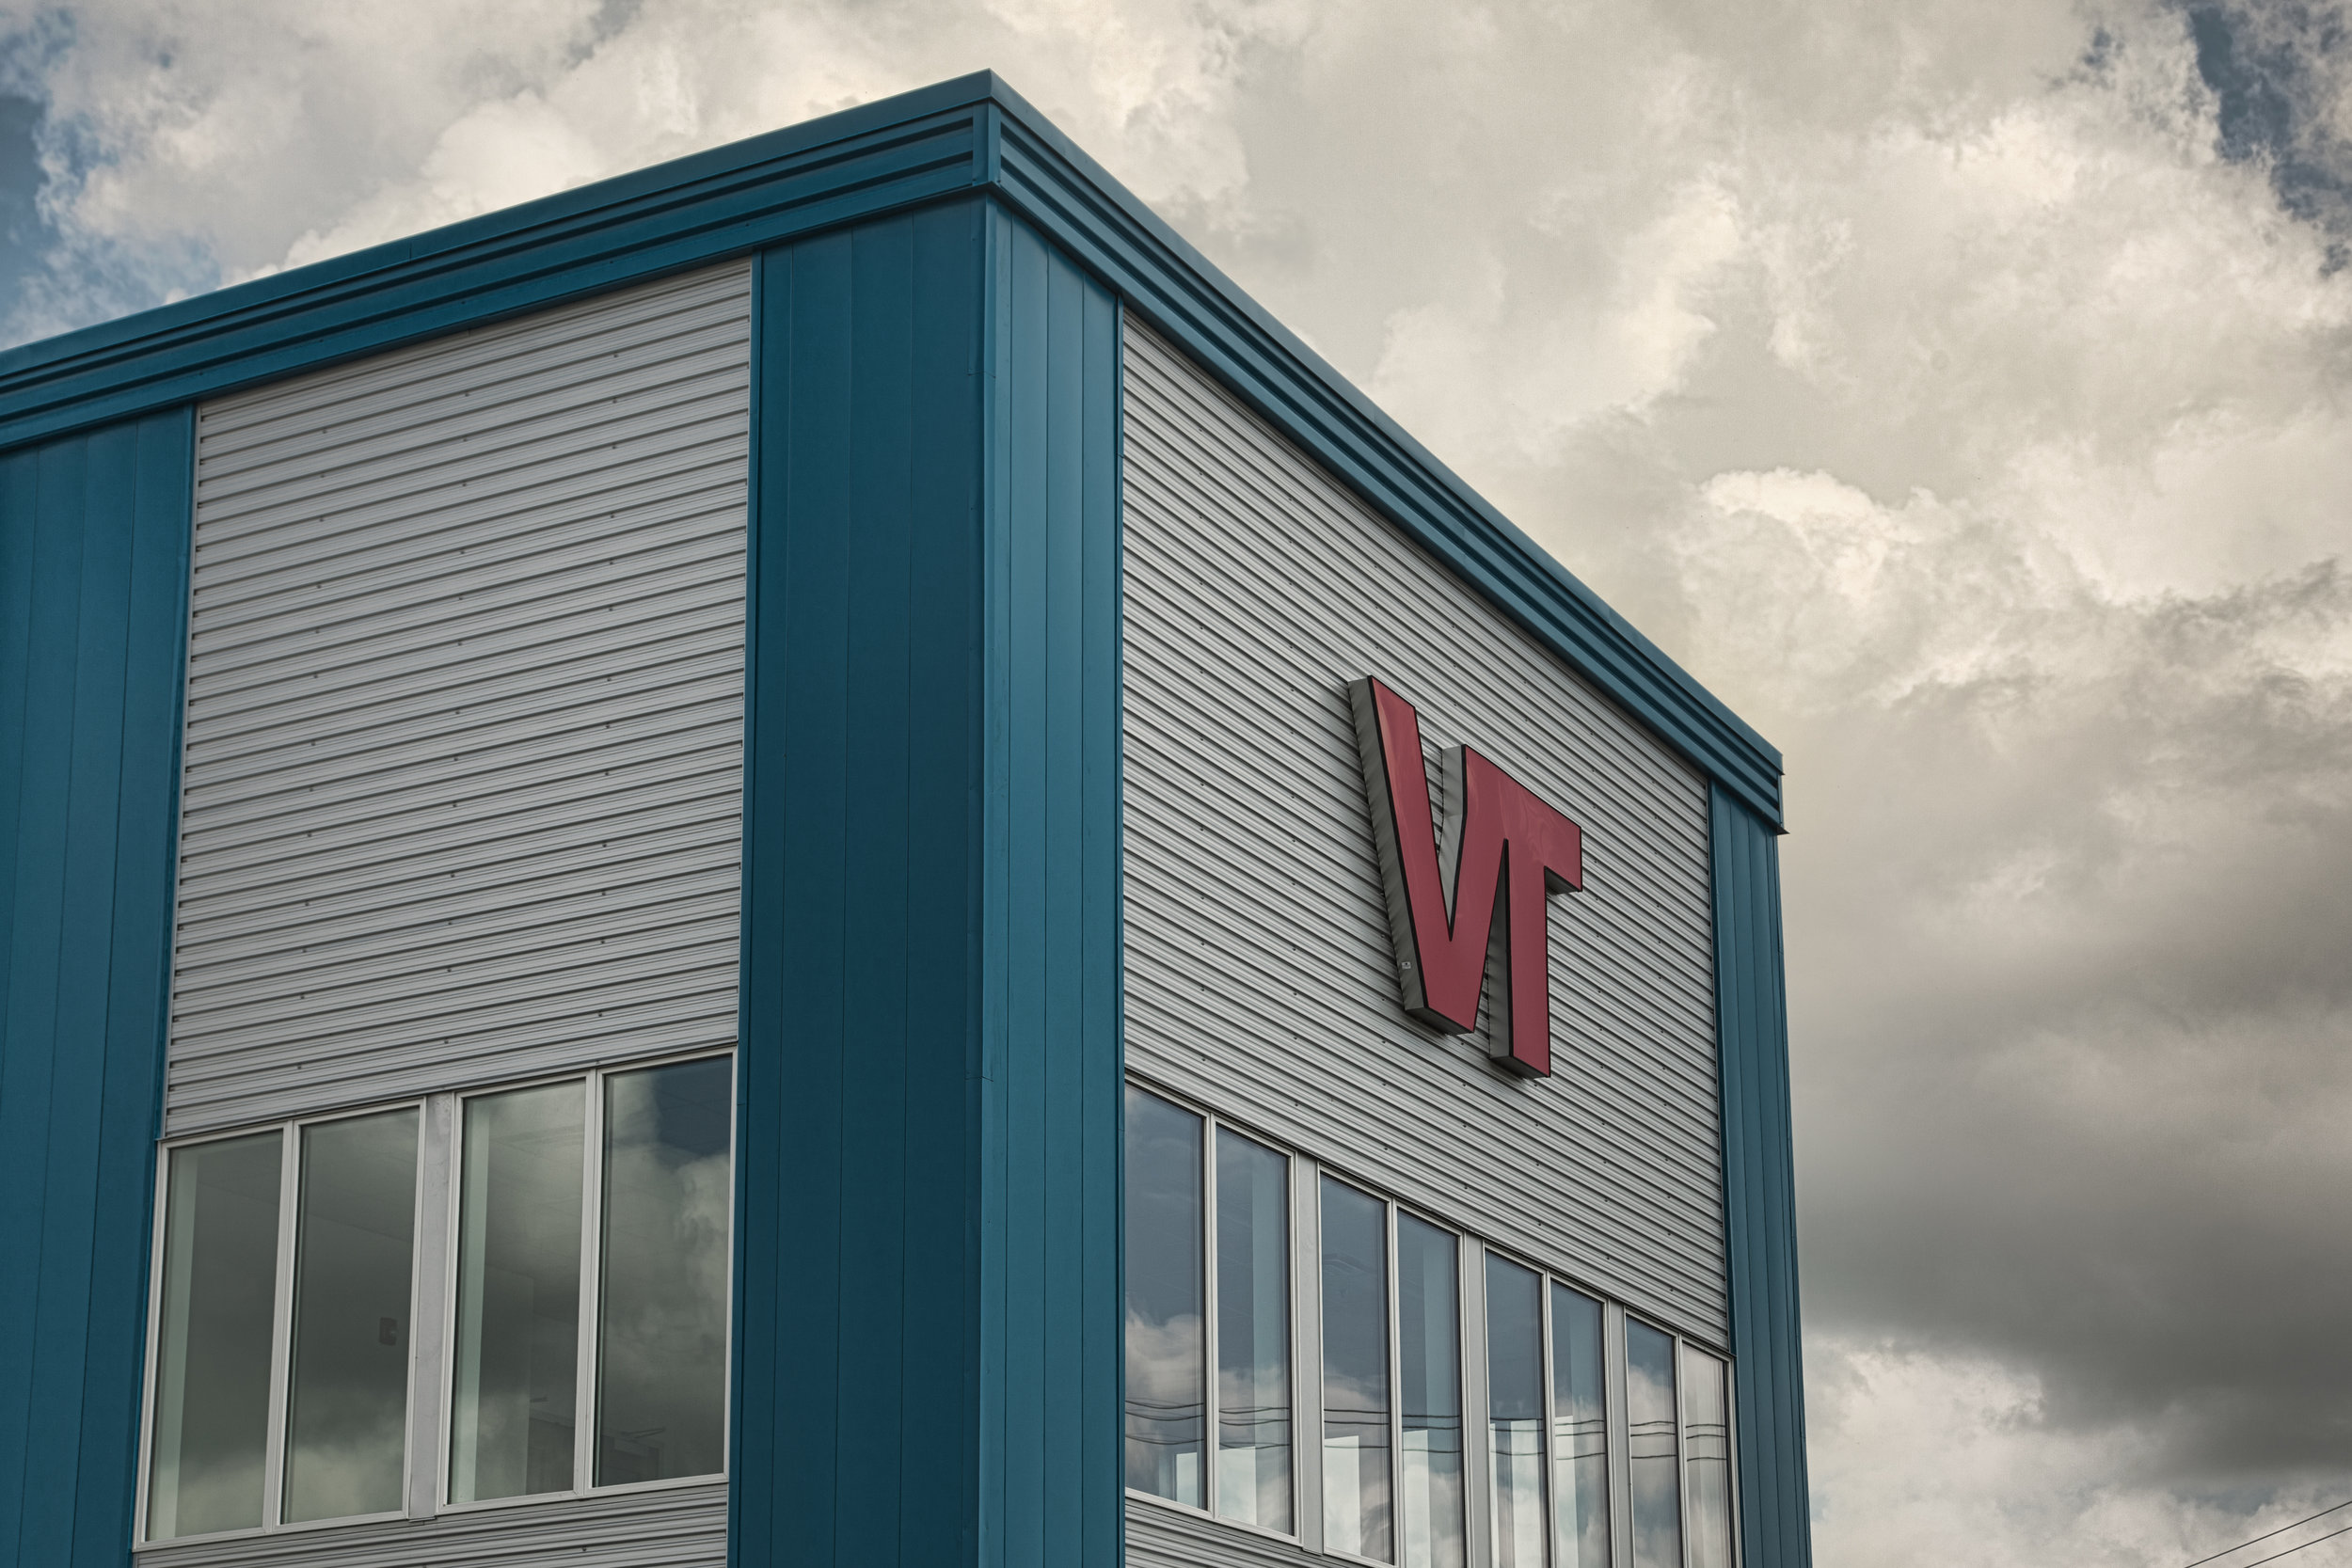 VALUE TIRE EXTERIOR 005.jpg